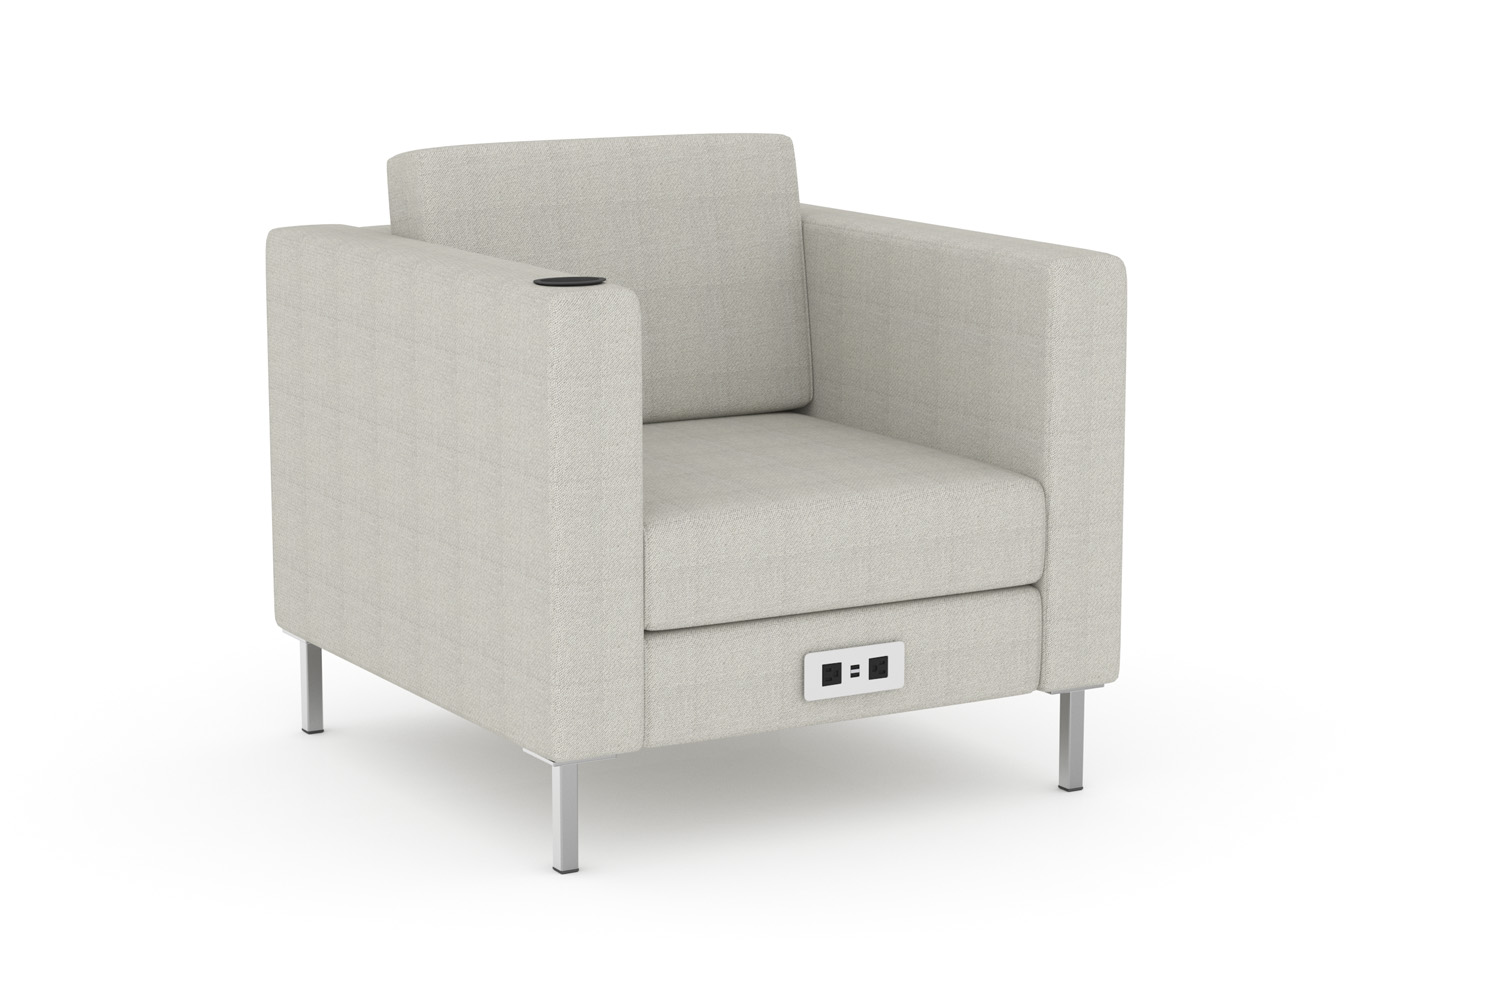 Sammy arm chair with optional cup holder and power/data